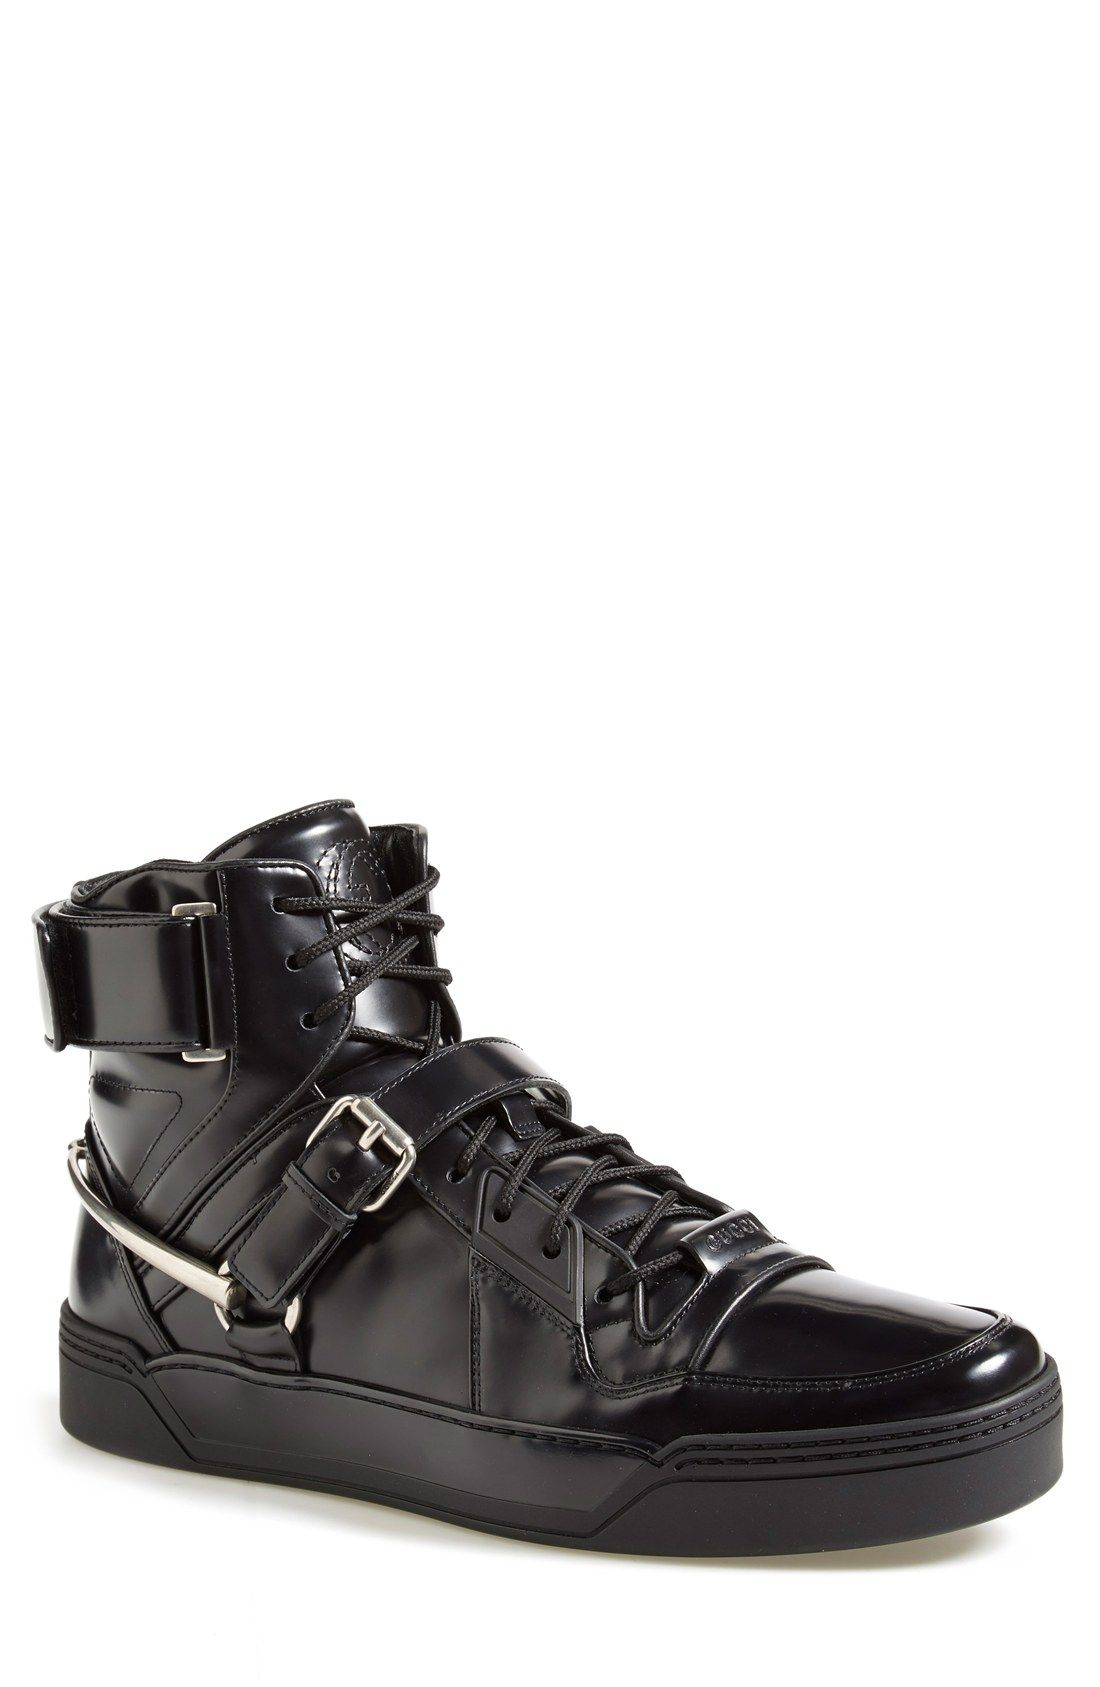 21d5a3d0025c Gucci  Basket Darko  High-Top Sneaker (Men)